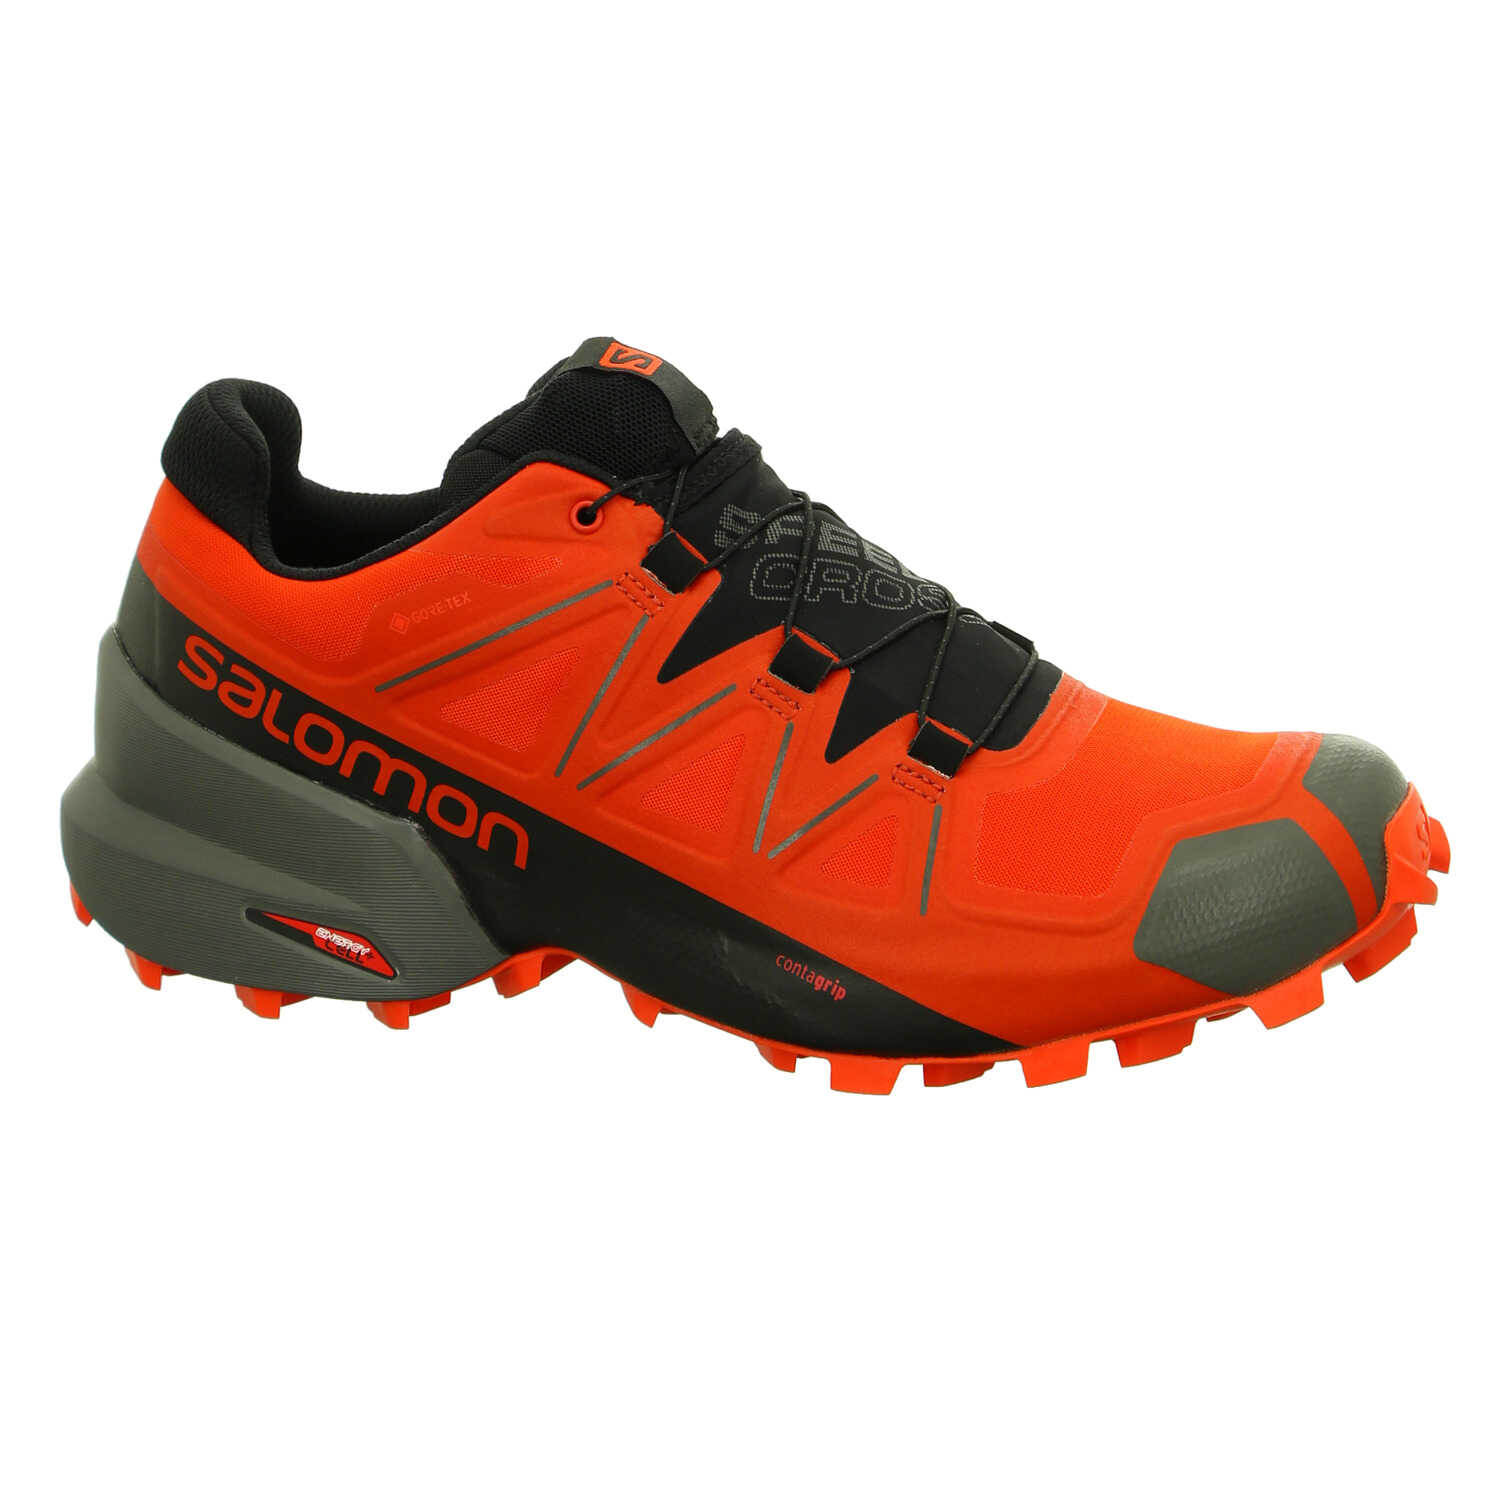 Salomon Speedcross 4 GTX GoreTex Herren Outdoorschuhe